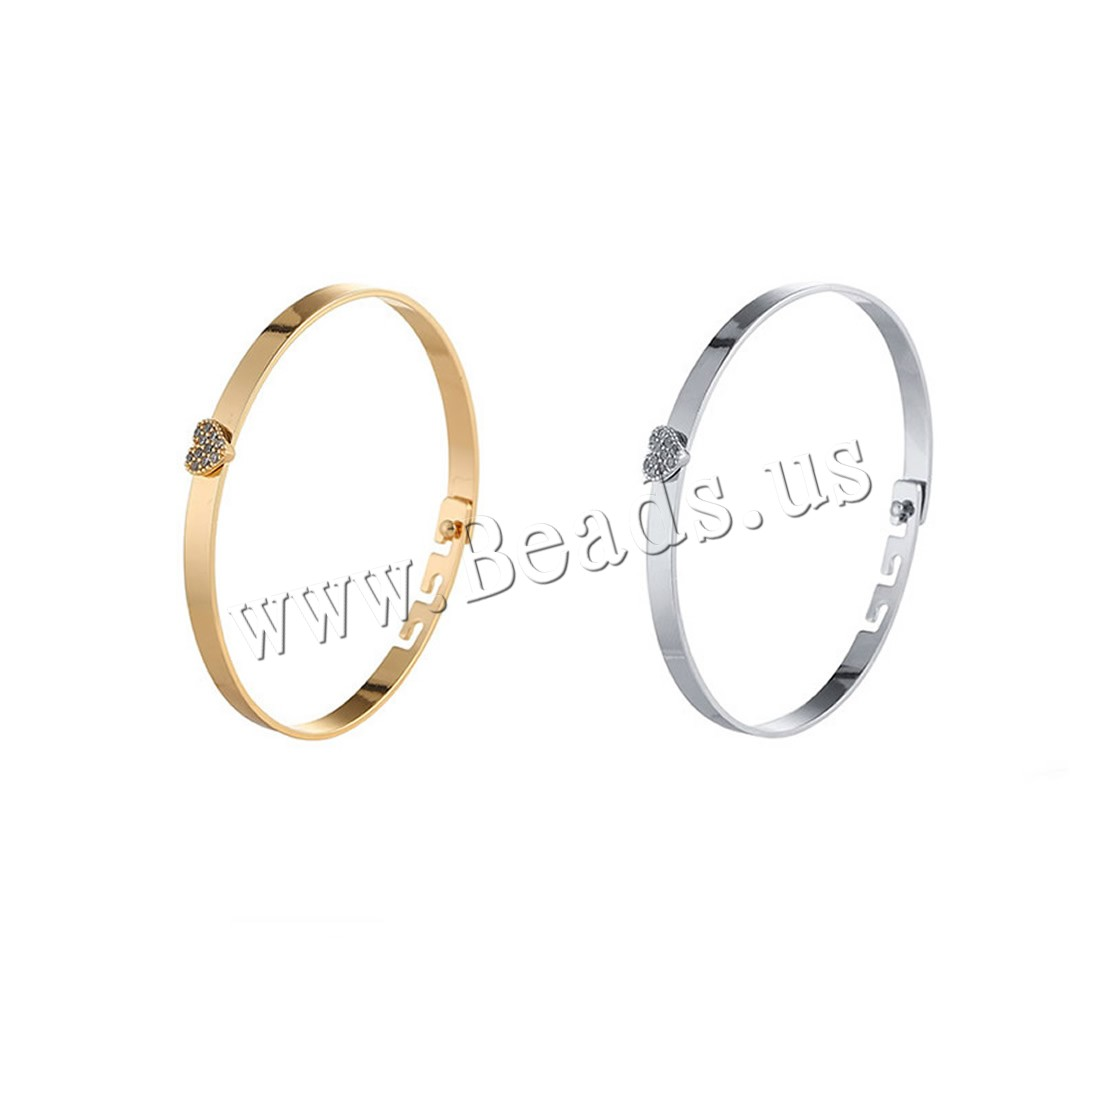 Buy Zinc Alloy Bangle Heart plated adjustable & woman & rhinestone colors choice lead & cadmium free 7mm Inner Diameter:Approx 62mm Length:Approx 7.5 Inch Sold PC